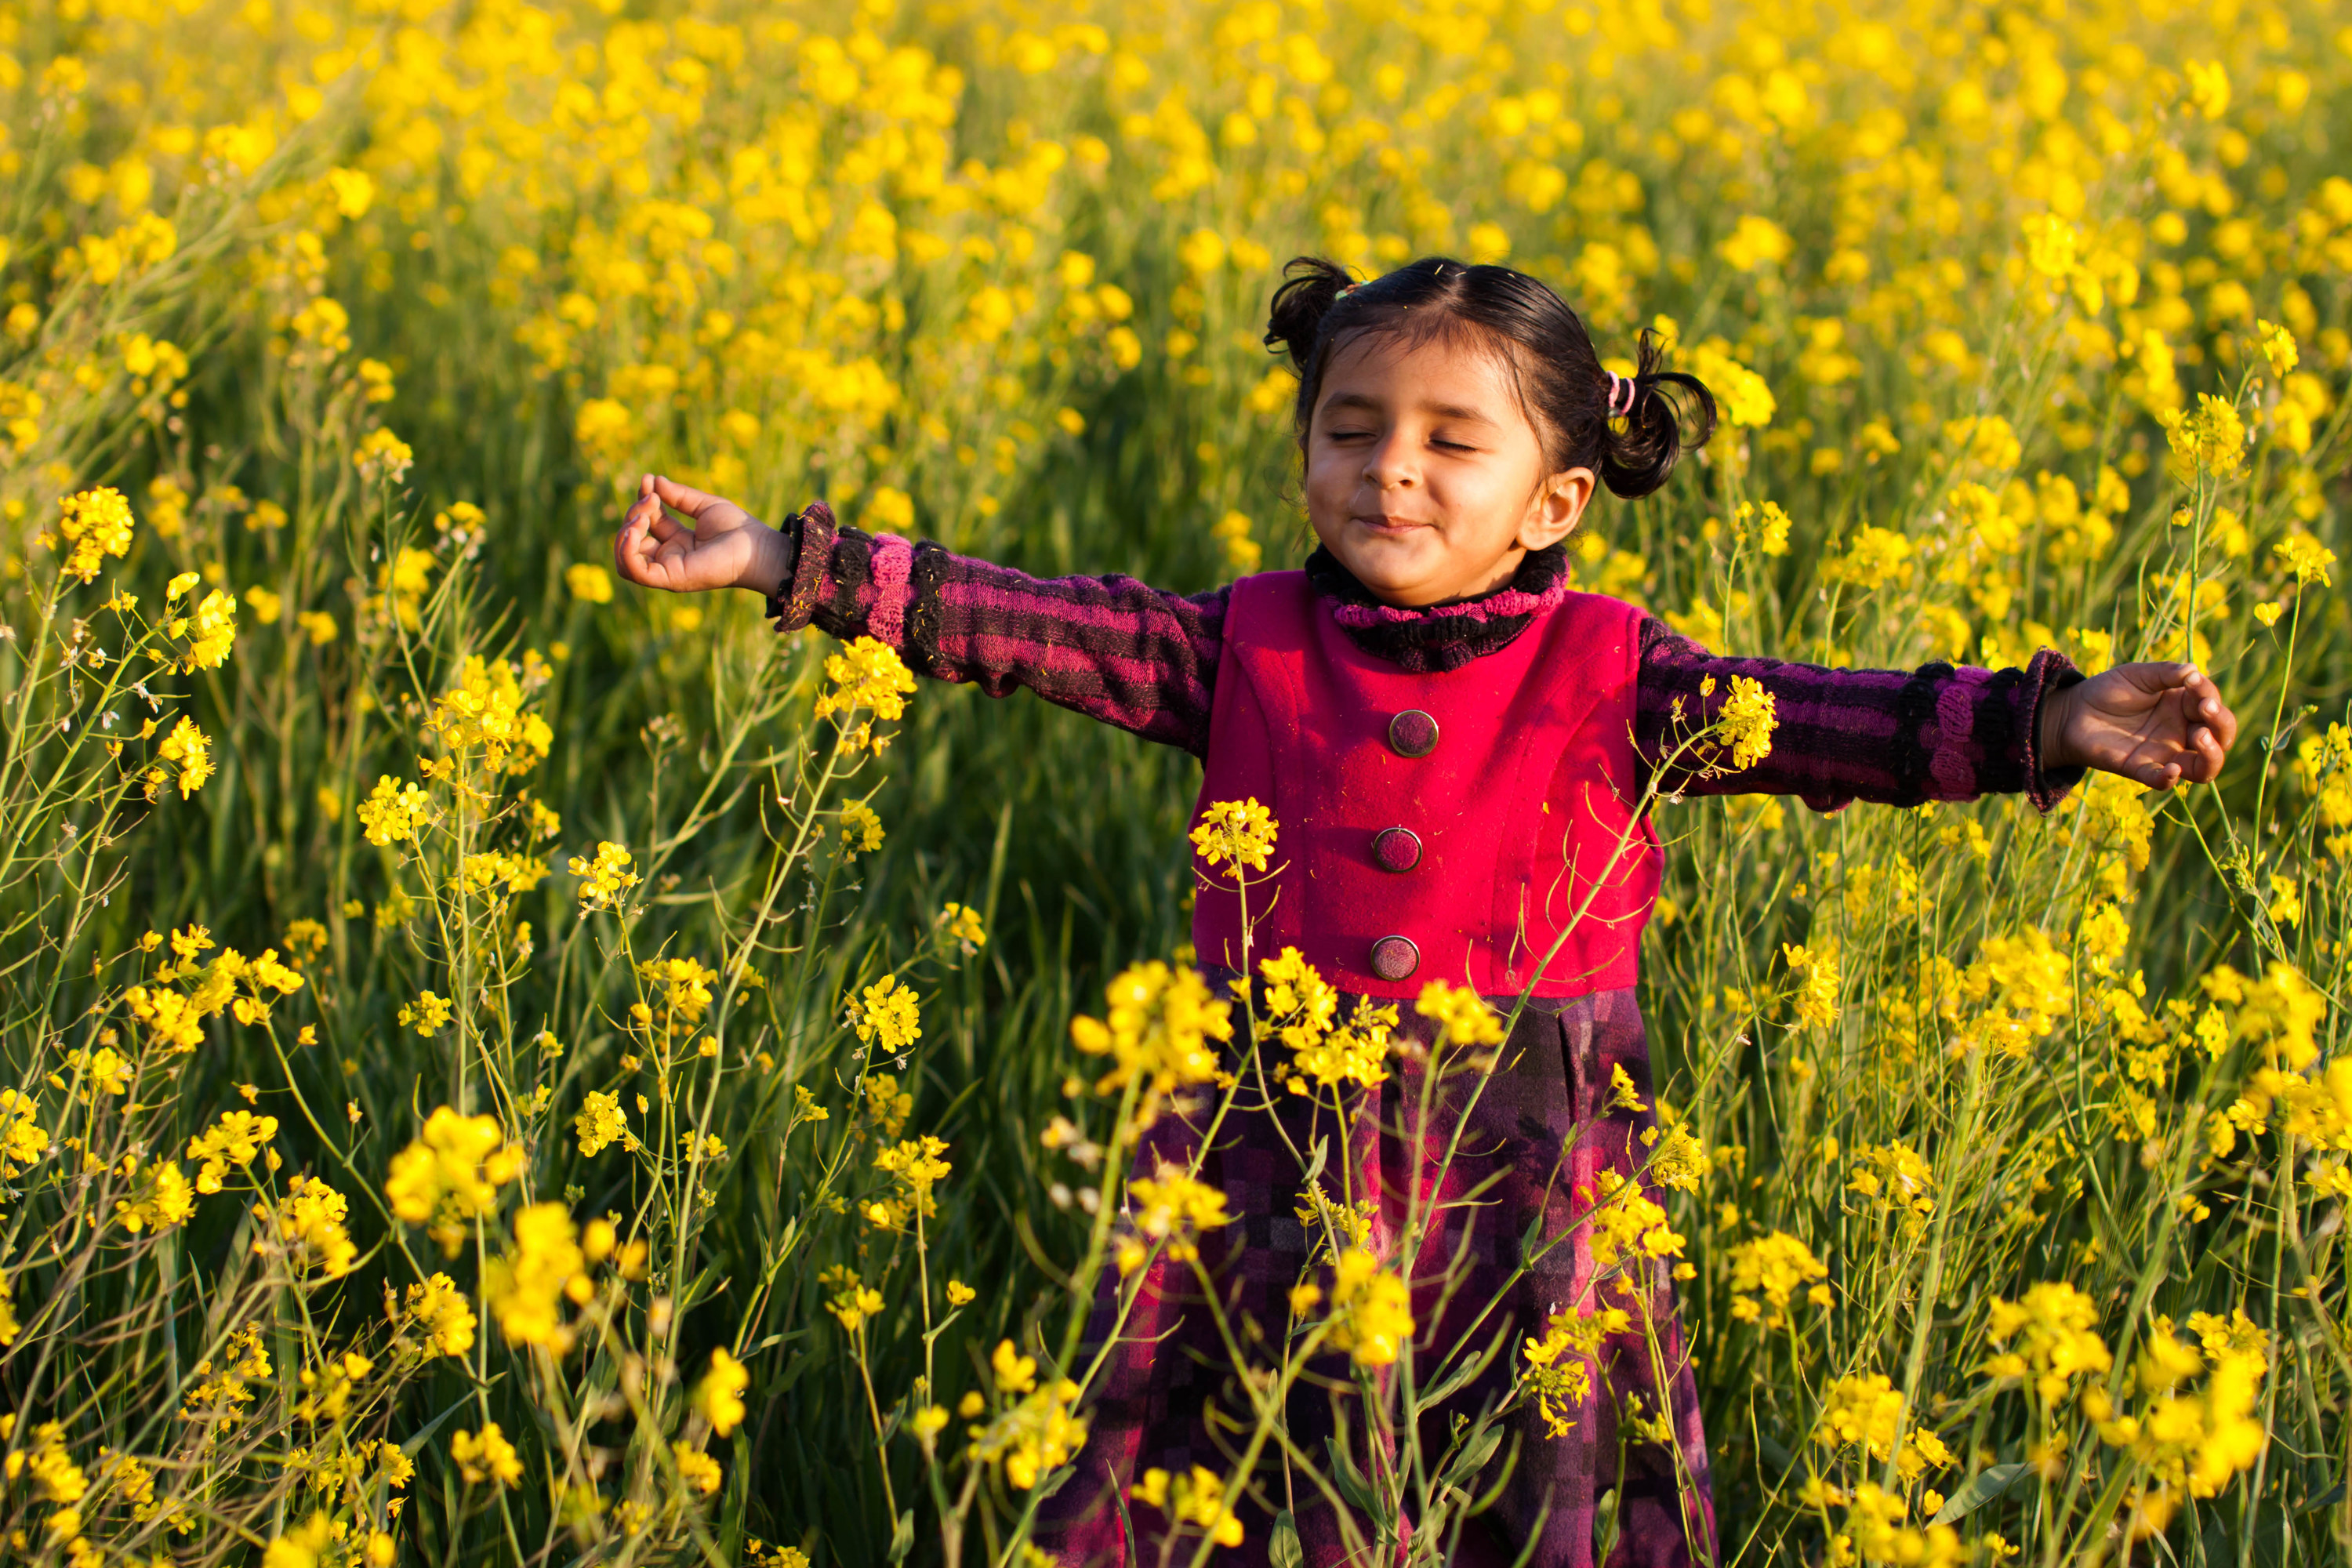 A Pakistani girl extends her arms in a field of flowers